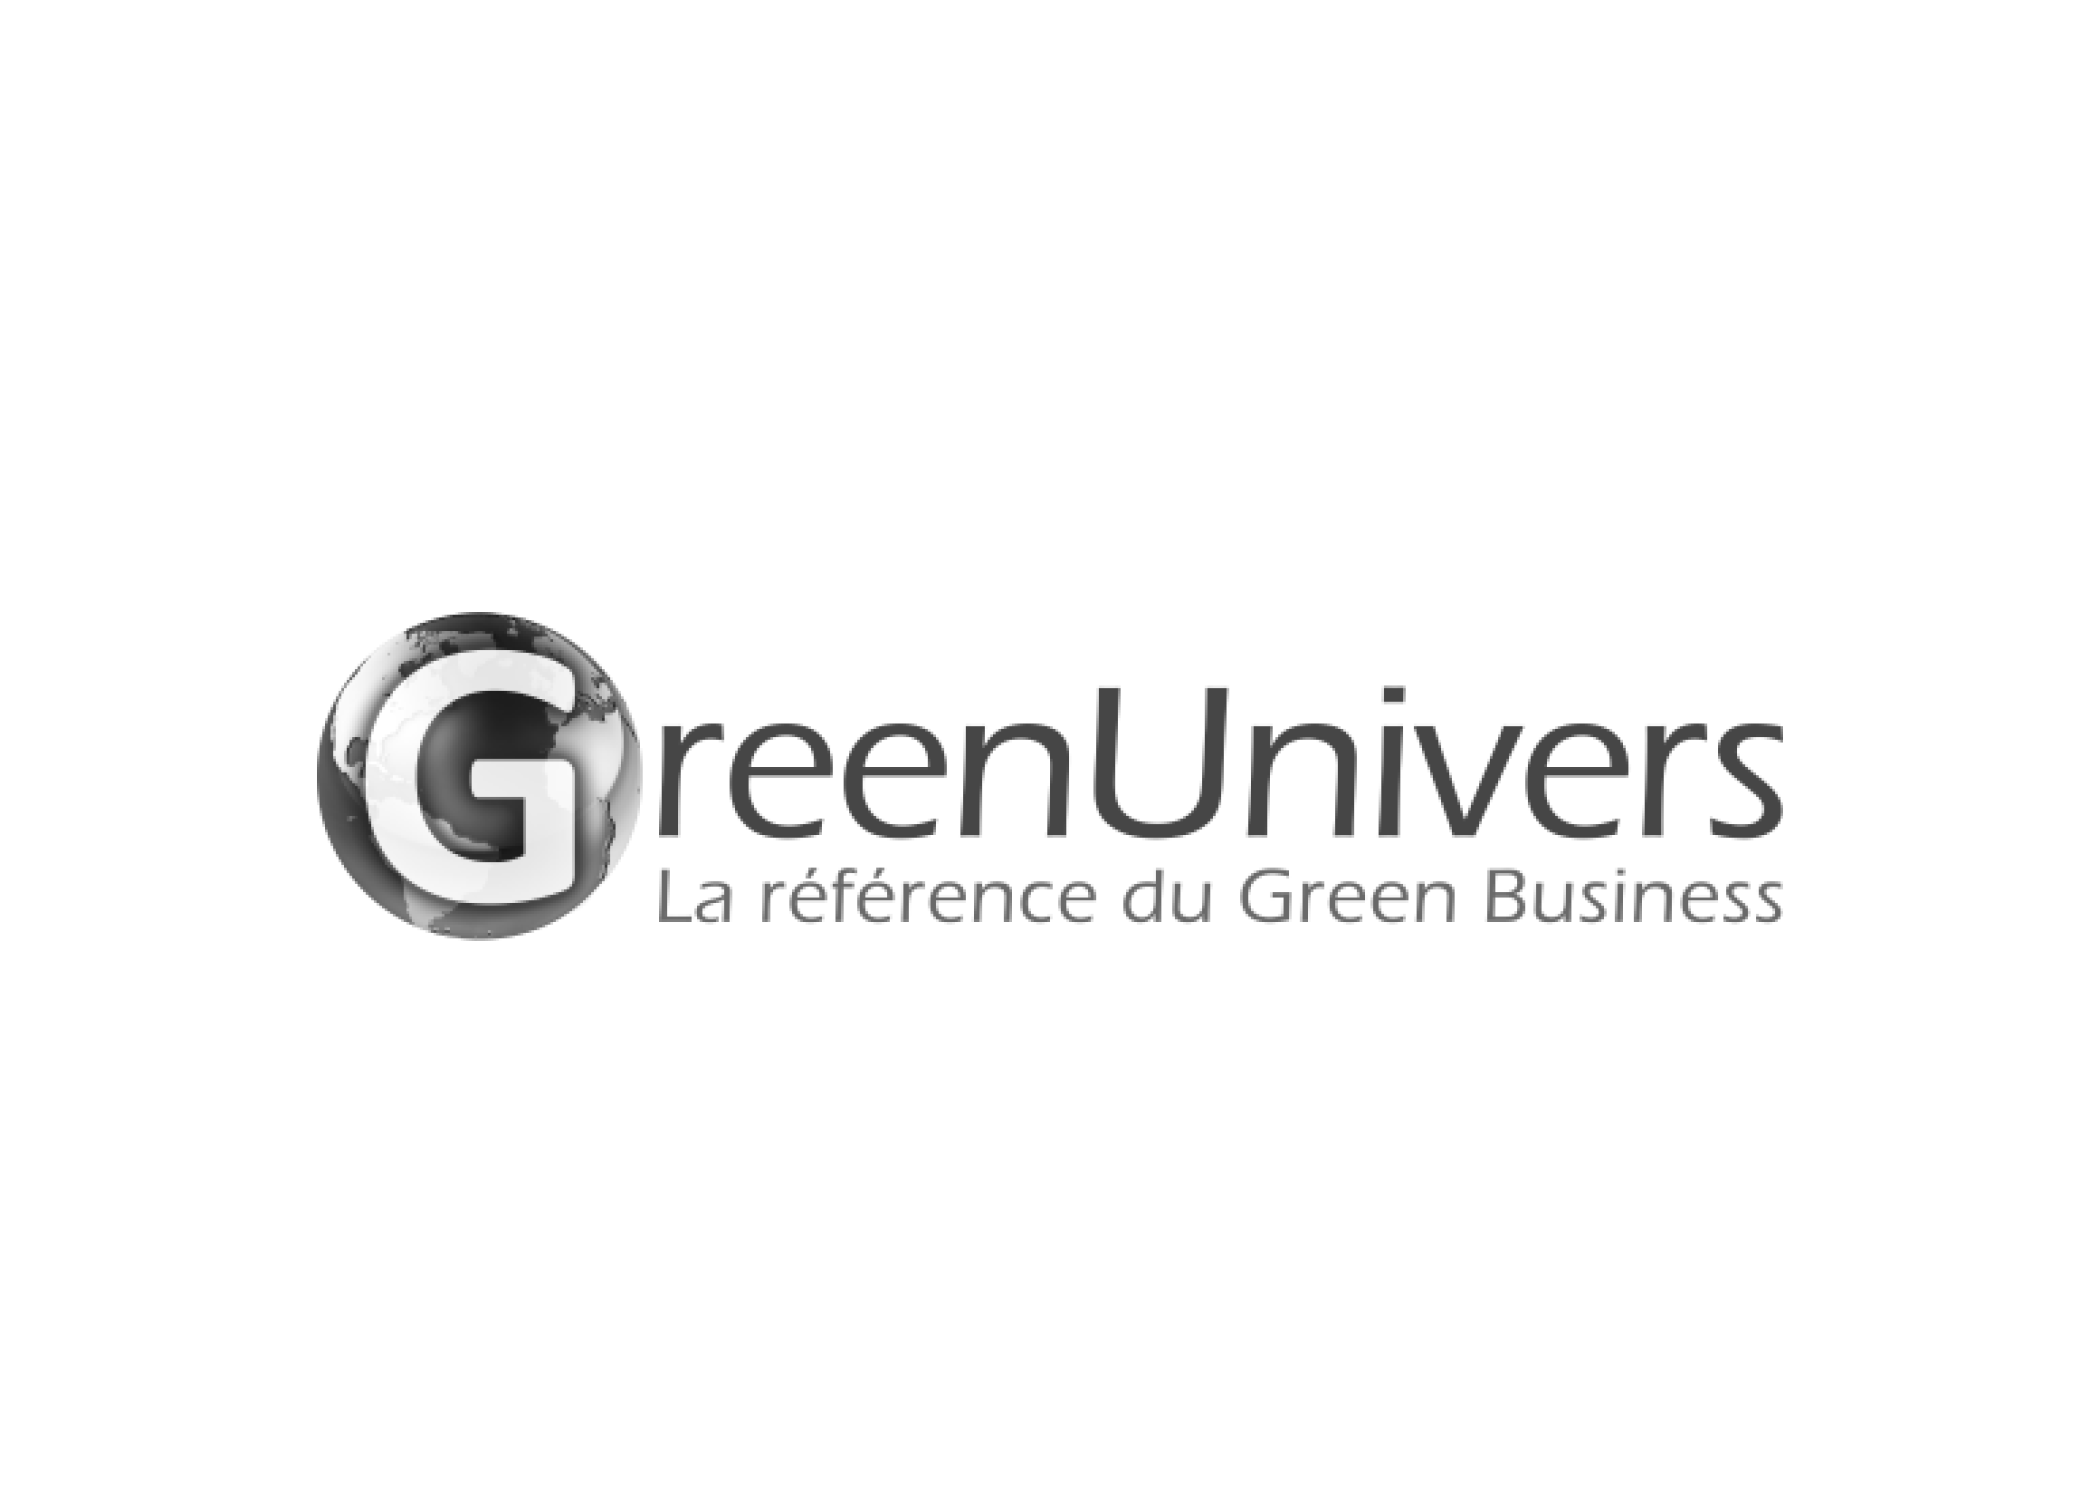 GreenUnivers